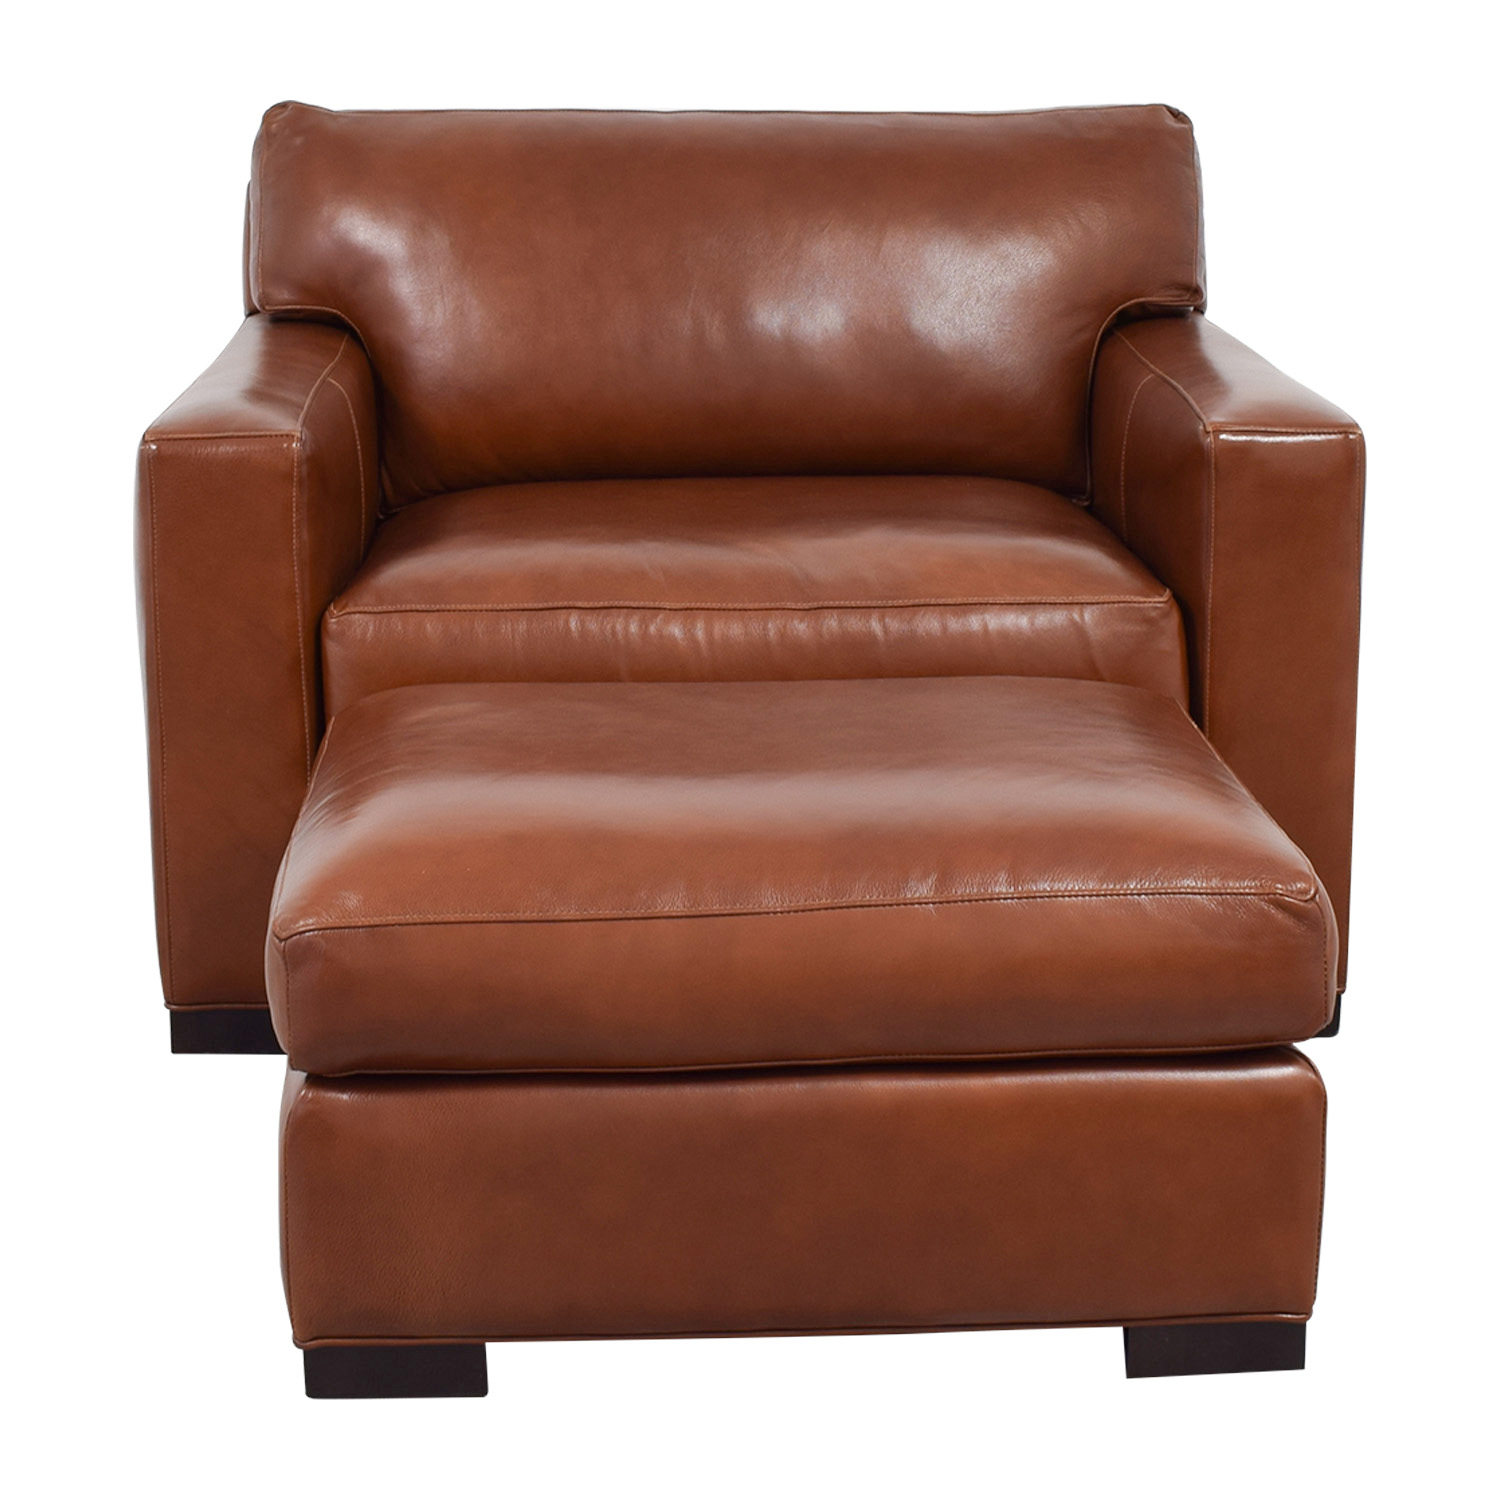 Leather Chairs And Ottomans Sale 80 Off Crate Barrel Crate Barrel Axis Ii Brown Leather Chair And Ottoman Sofas